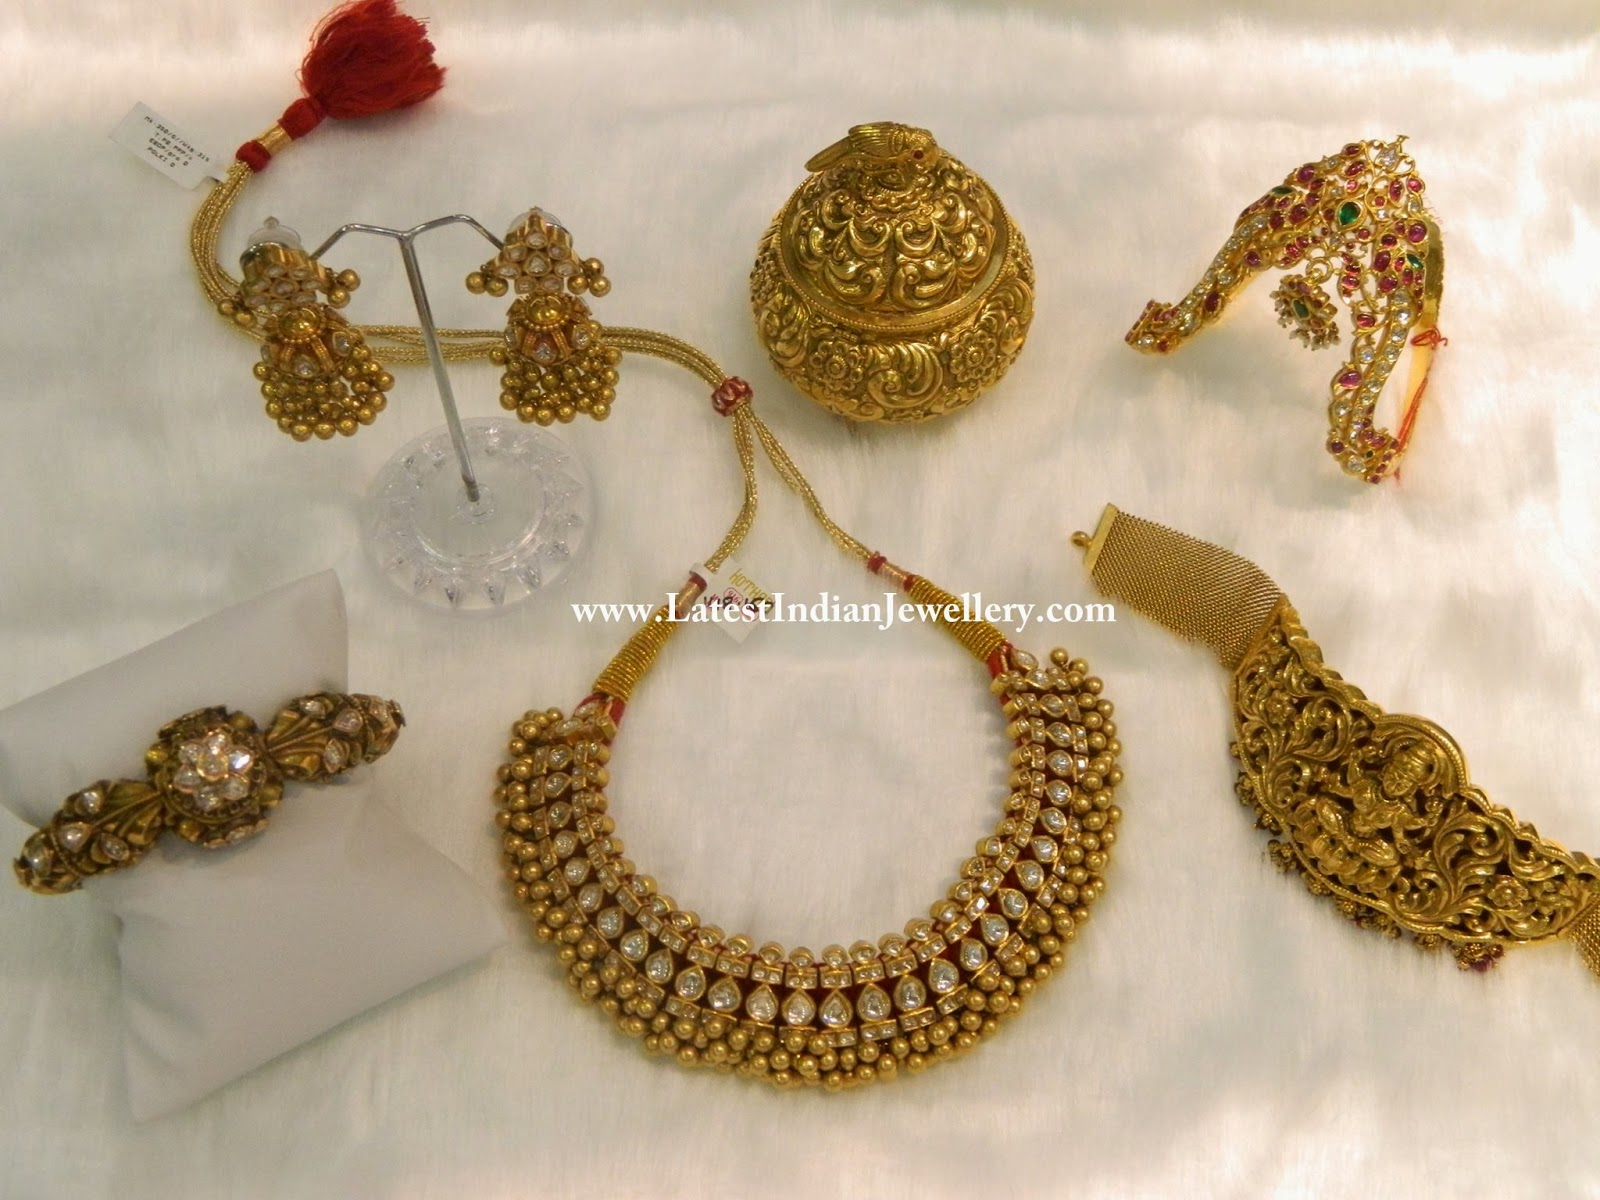 22kt indian gold jewelry